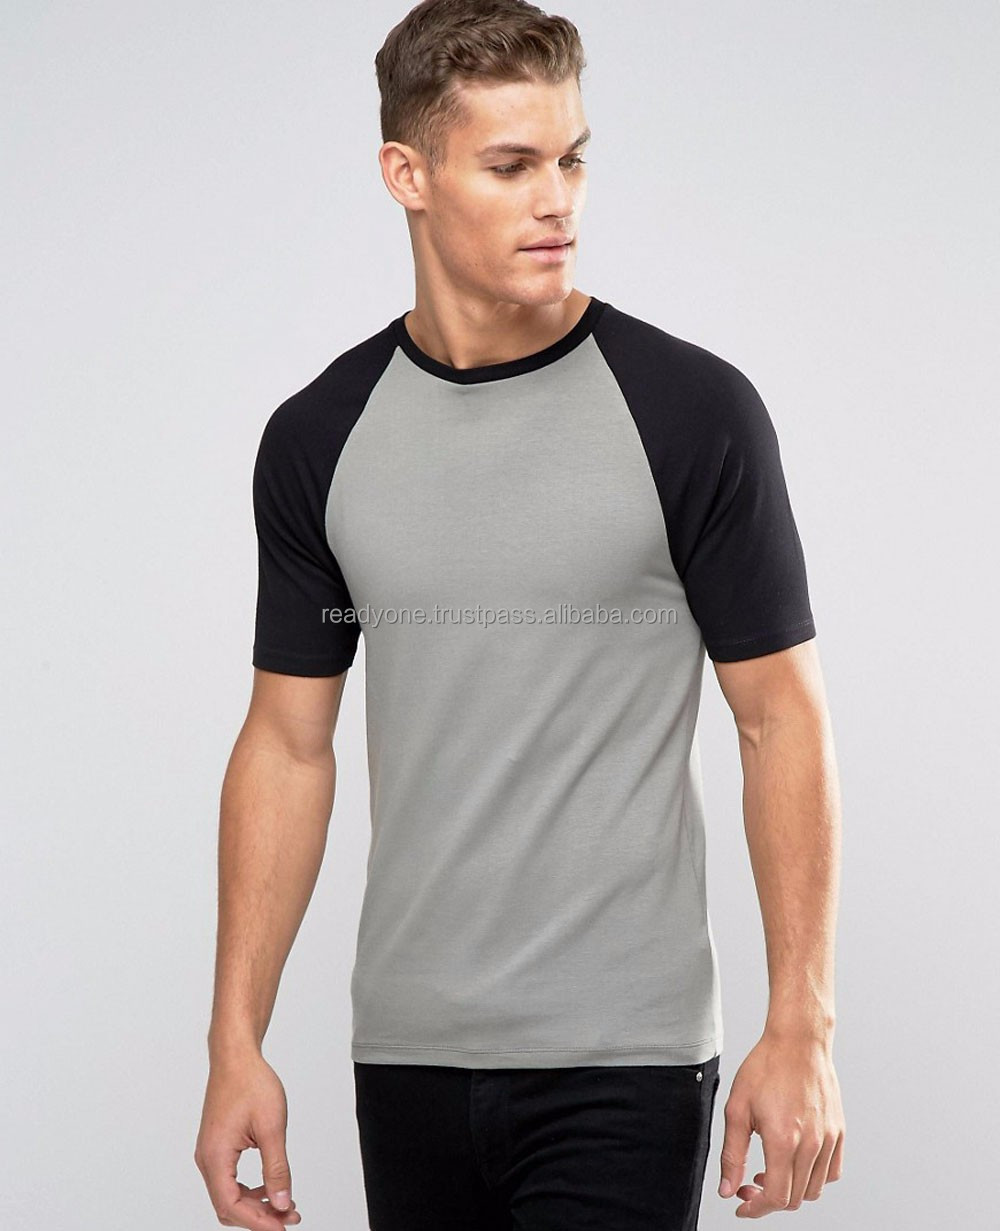 Muscle Fit Longline T Shirt, Muscle Fit Longline T Shirt Suppliers and  Manufacturers at Alibaba.com